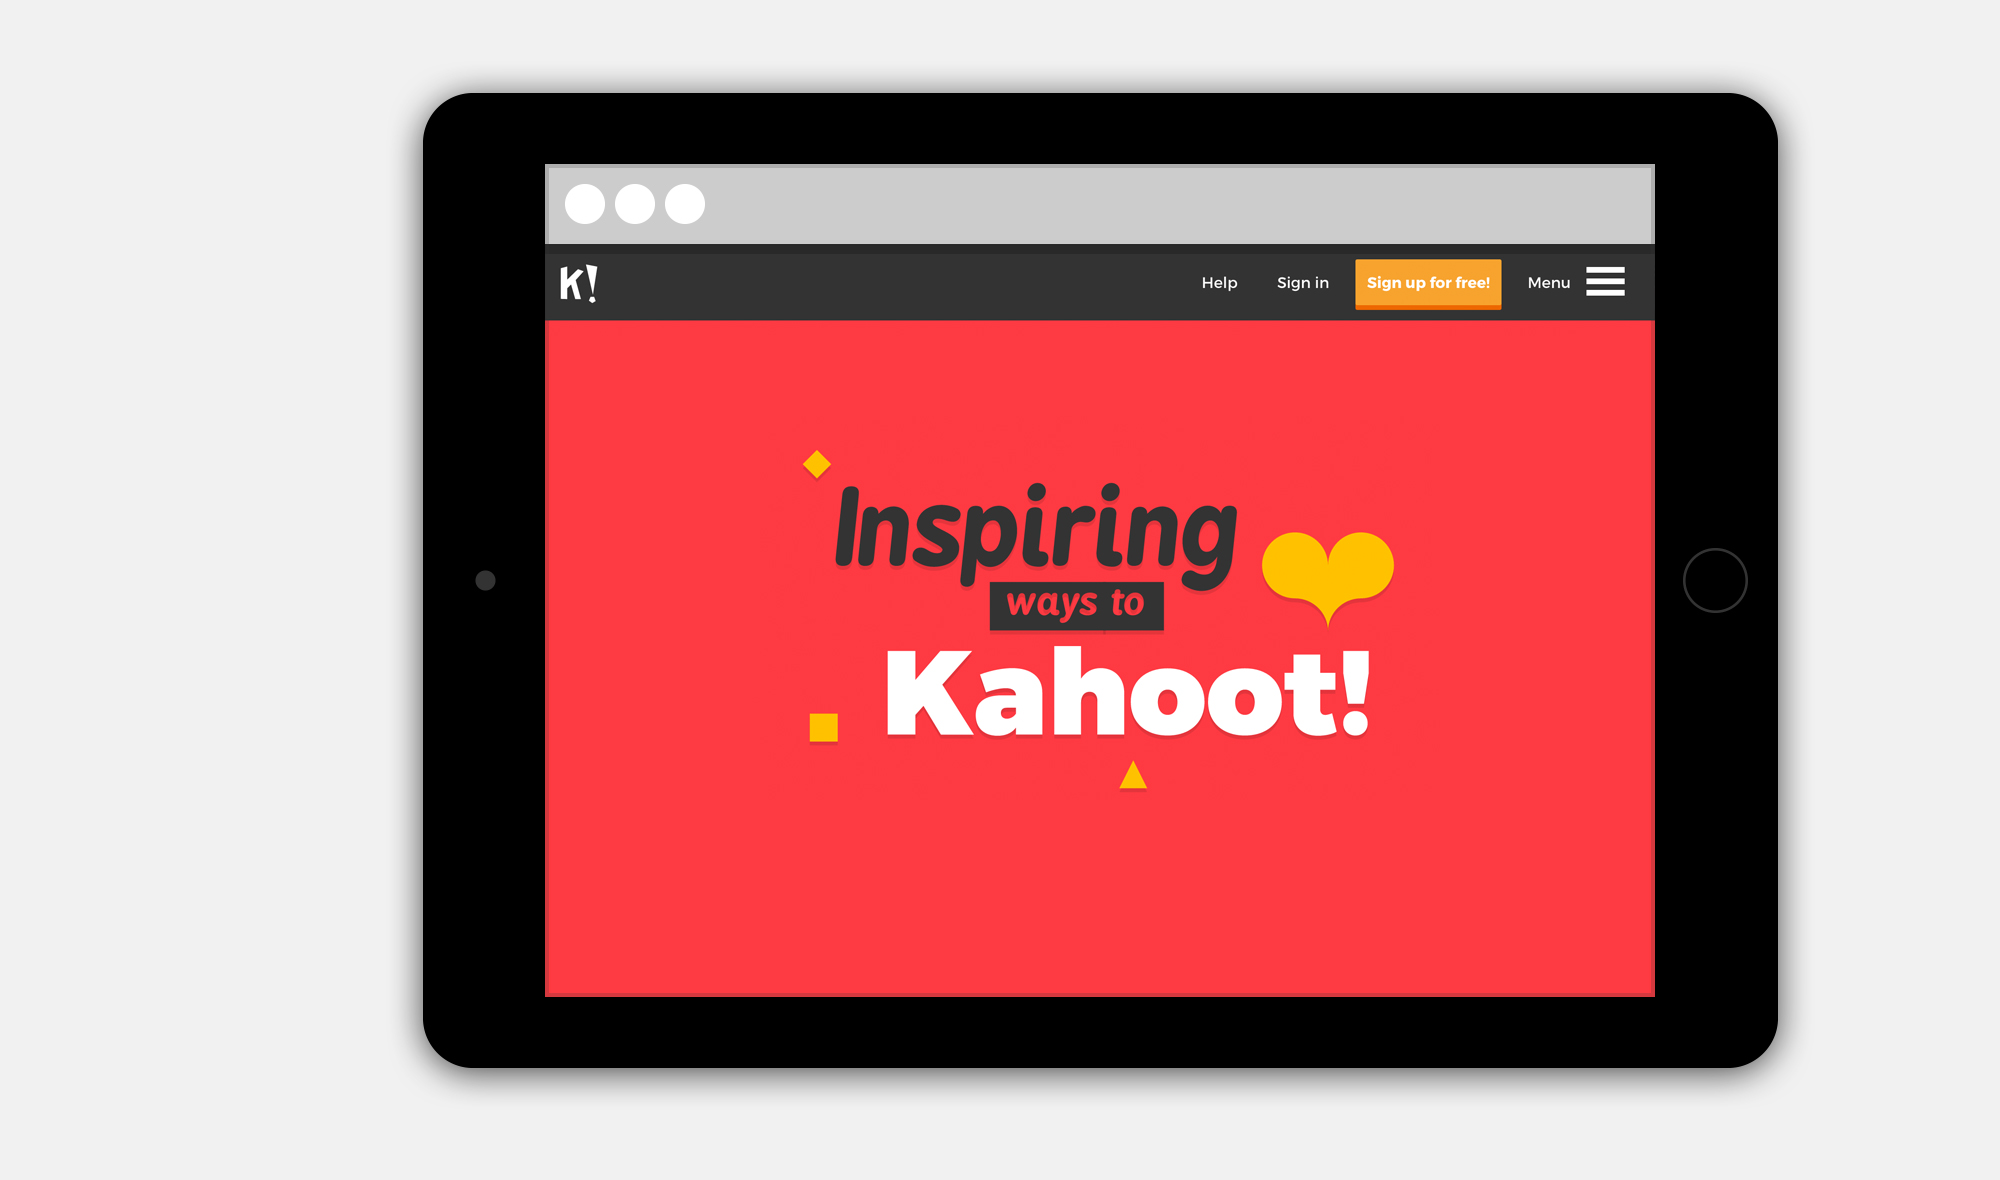 The Guidelines Helped To Govern And Maintain A Unique Consistent Look Feel For Kahoot Experience Across All Platforms